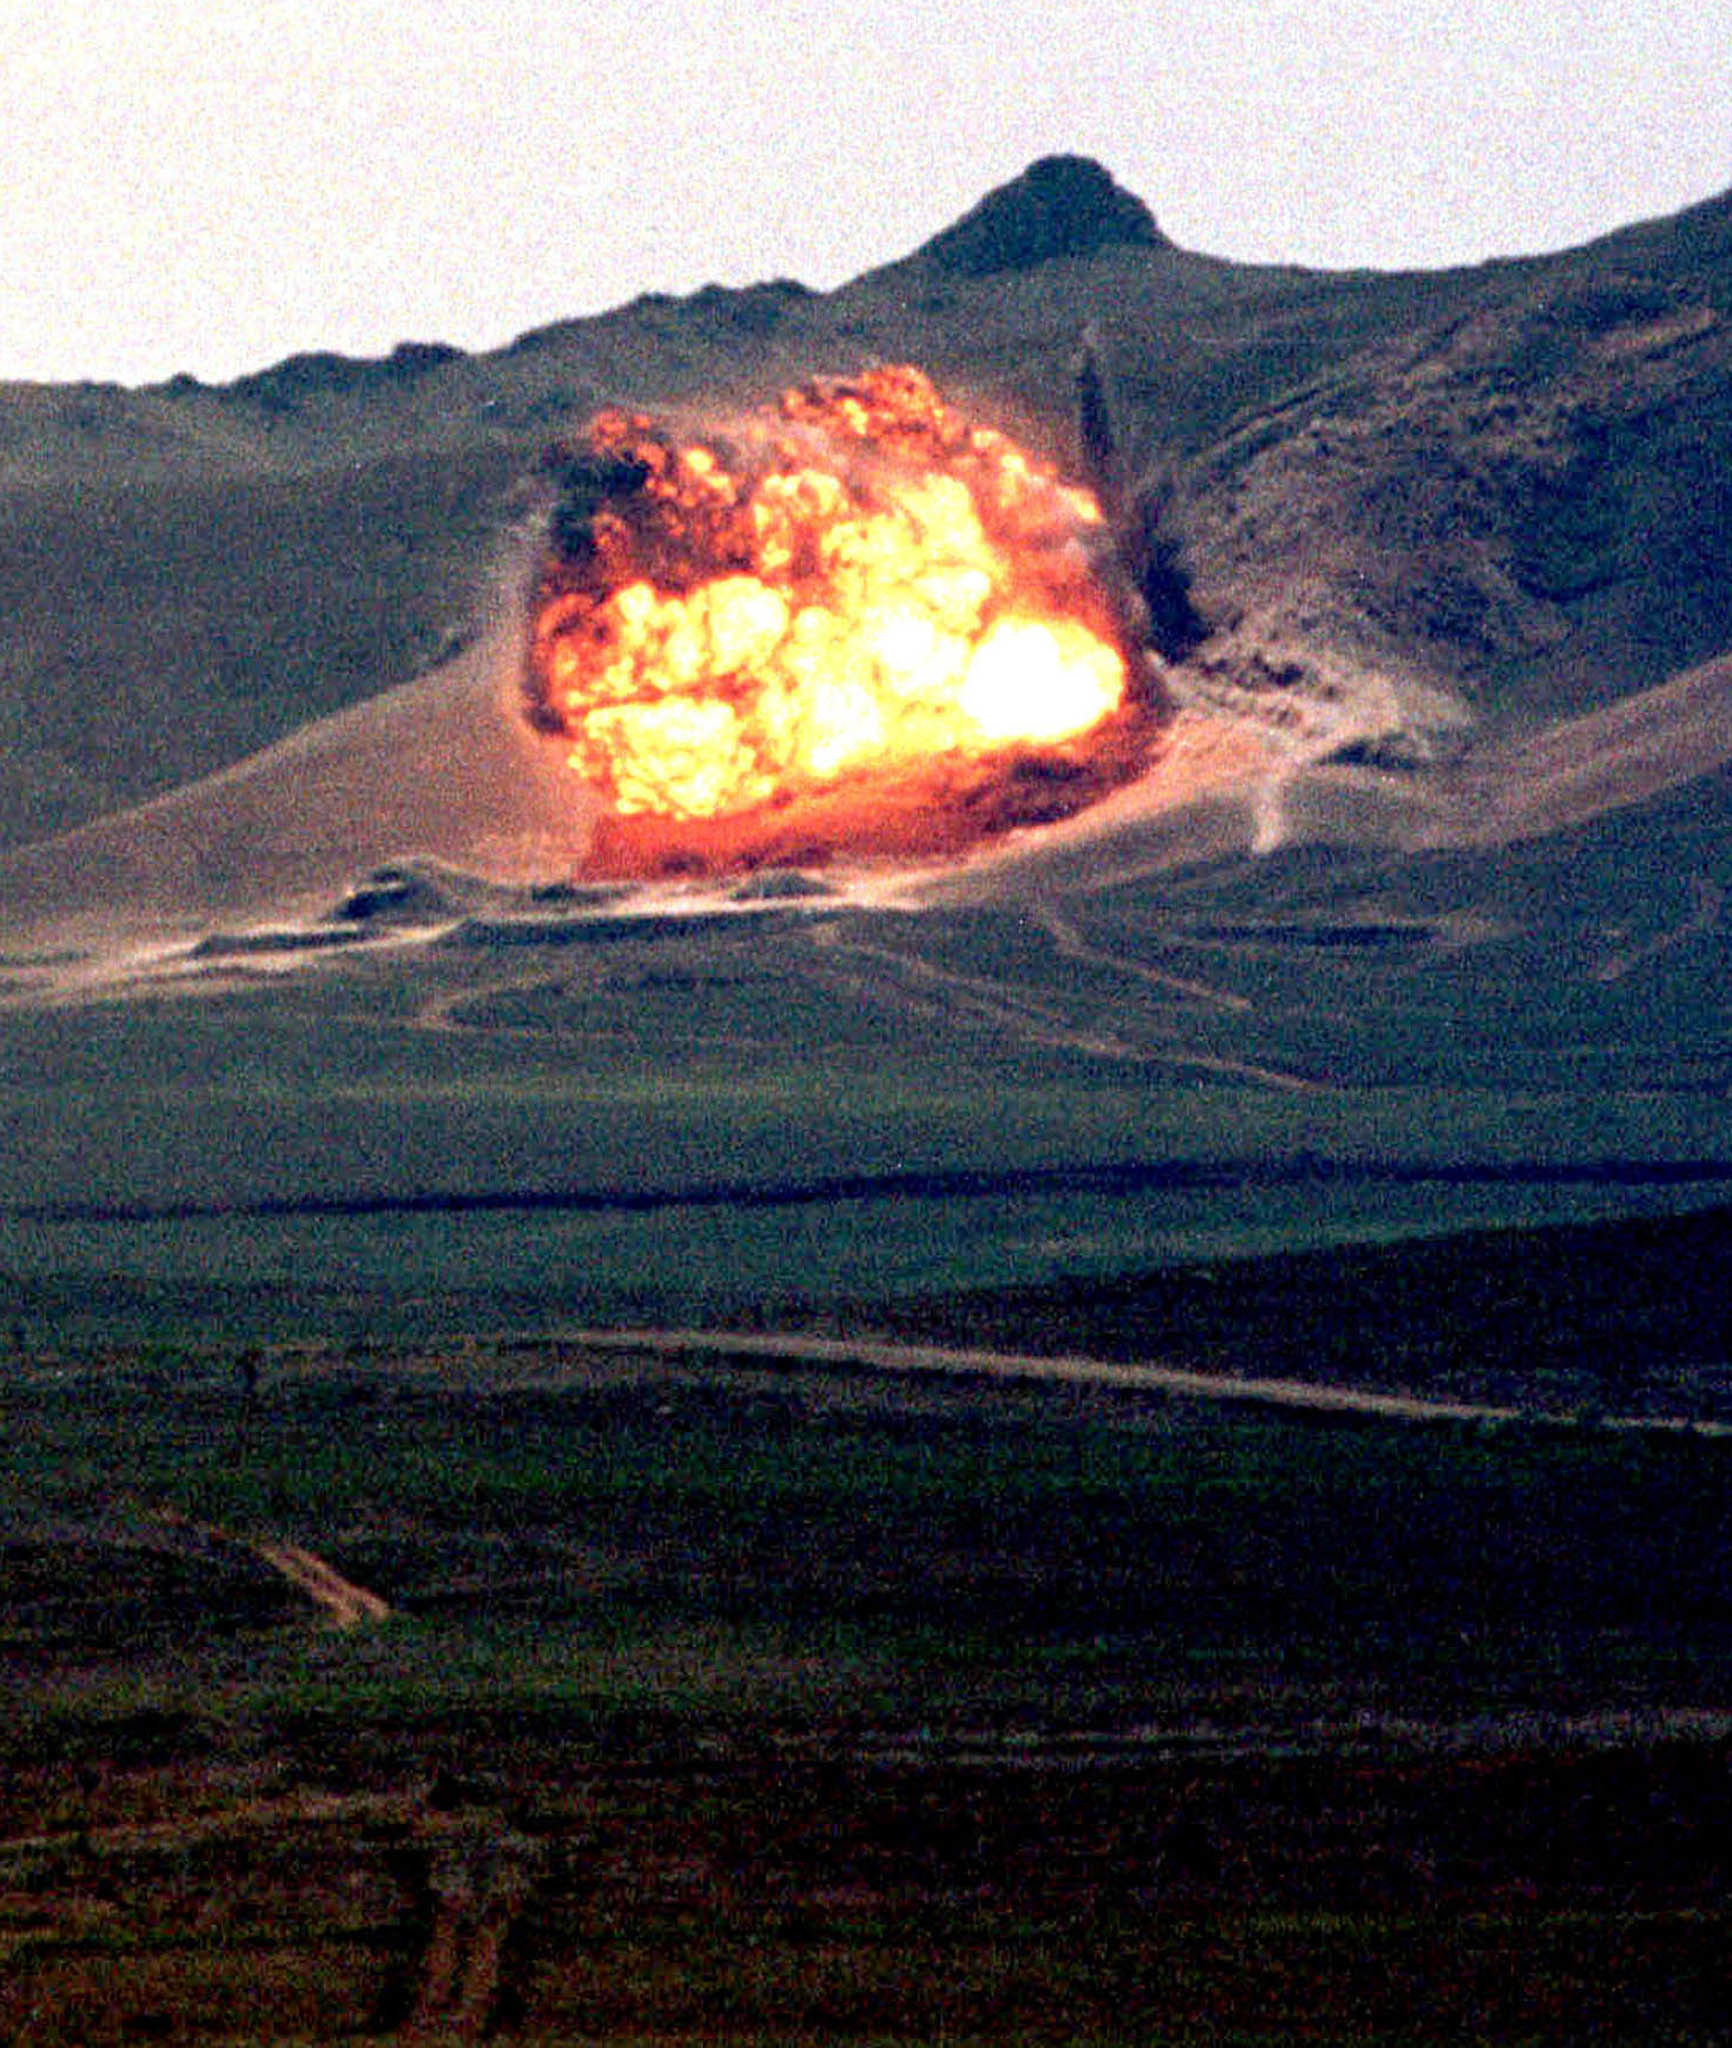 An explosion during the demolition of the Semipalatinsk test site in July 2000